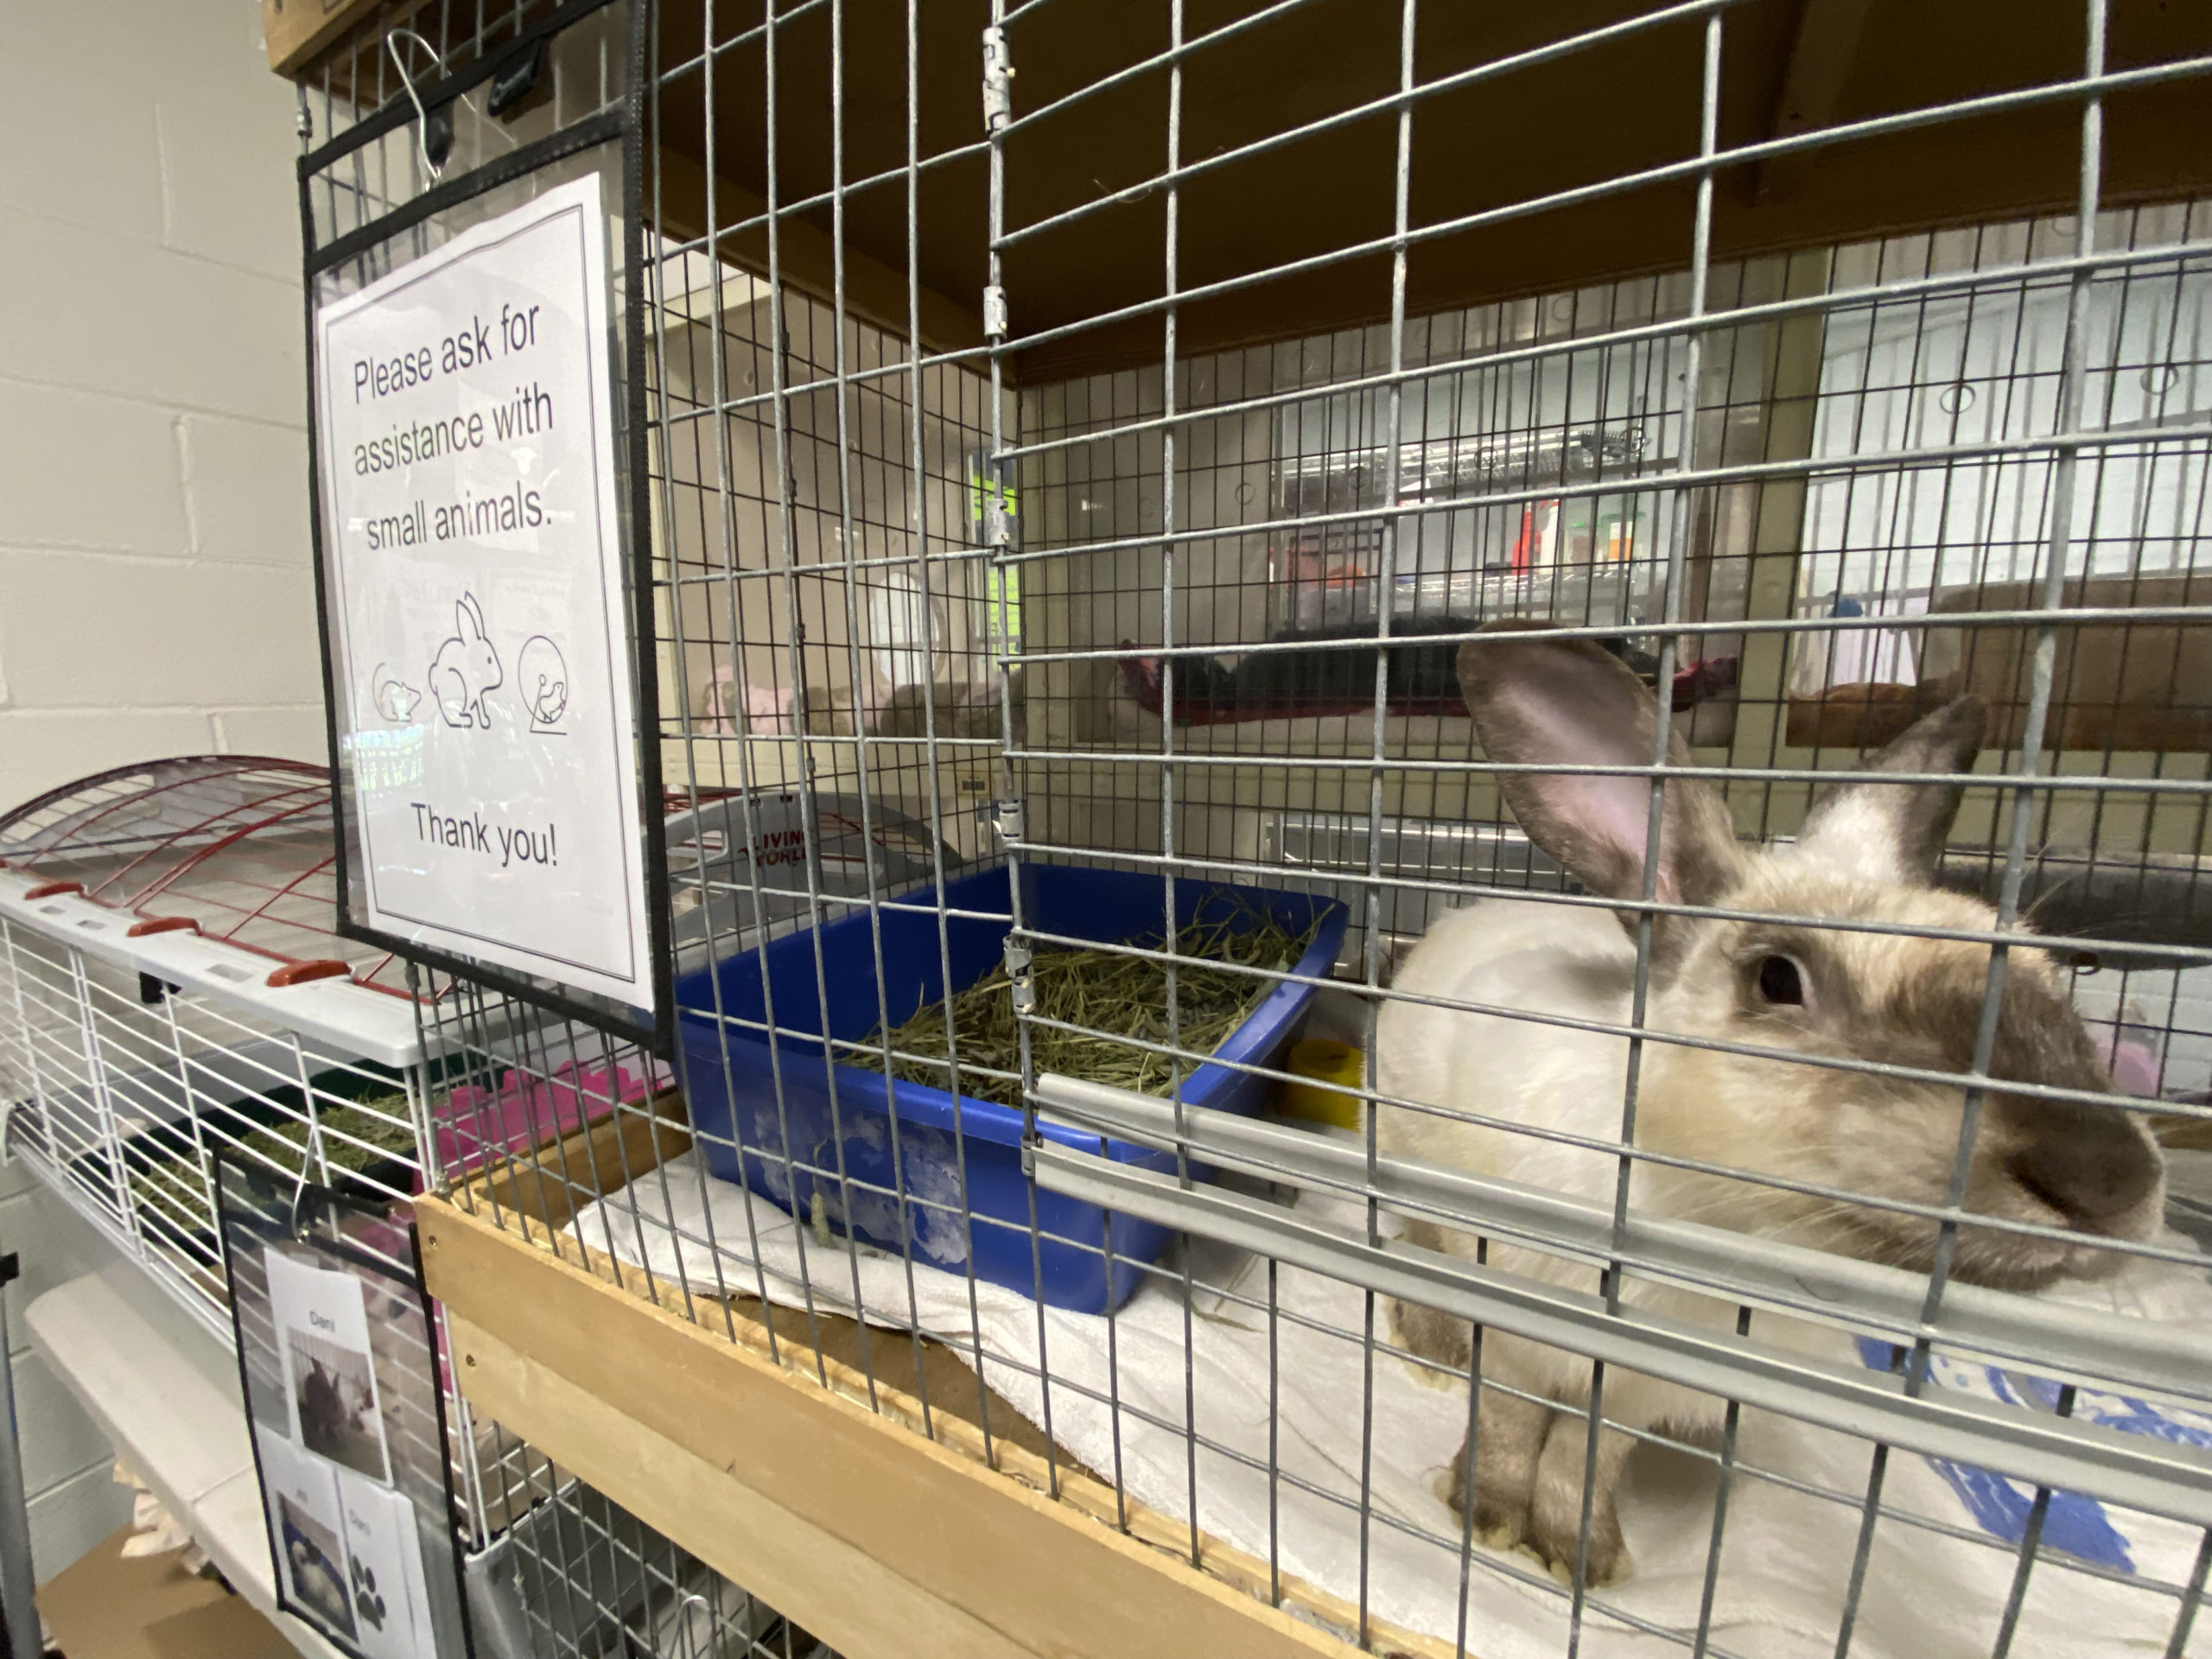 Billy is one of the rabbits currently residing at the shelter.  DANA SHAW